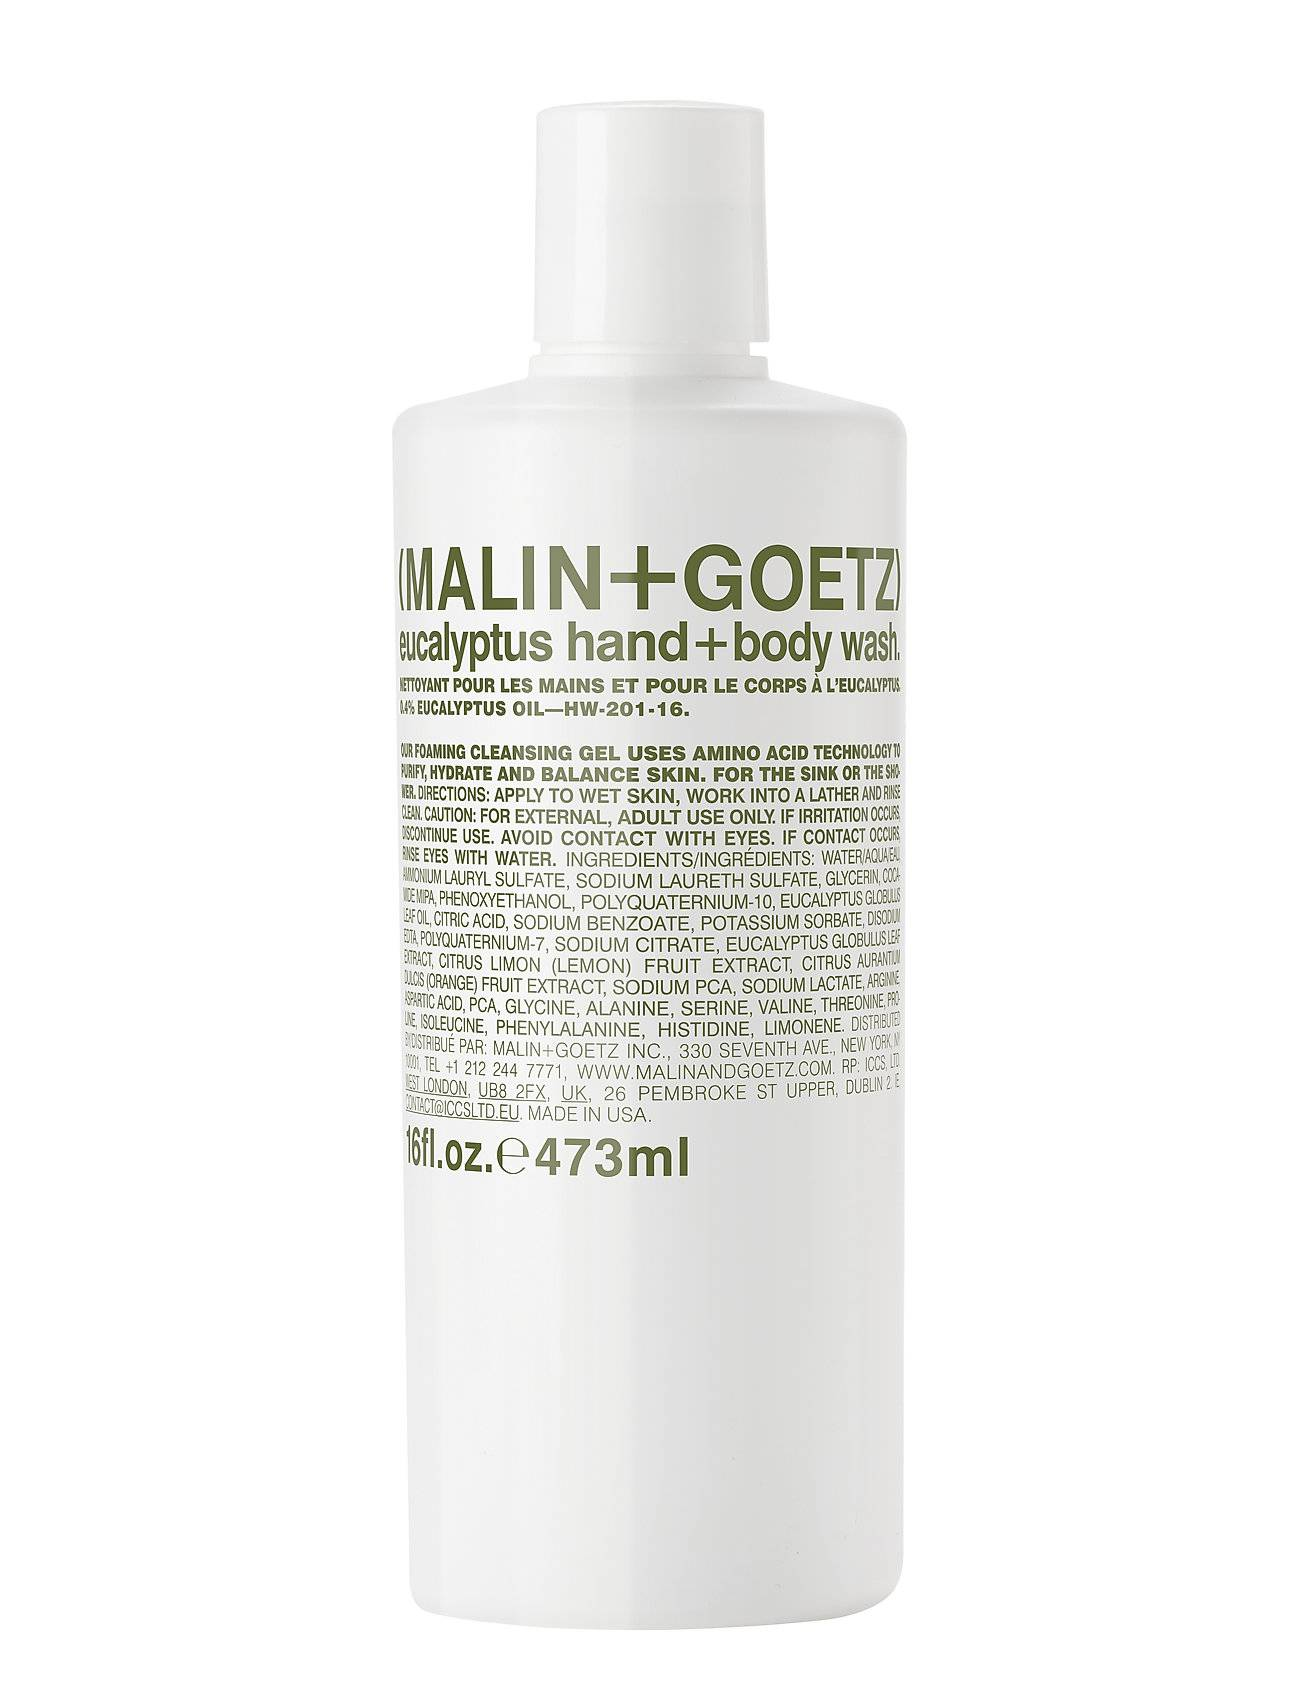 Malin+Goetz Eucalyptus Hand + Body Wash Beauty MEN Skin Care Body Shower Gel Nude Malin+Goetz